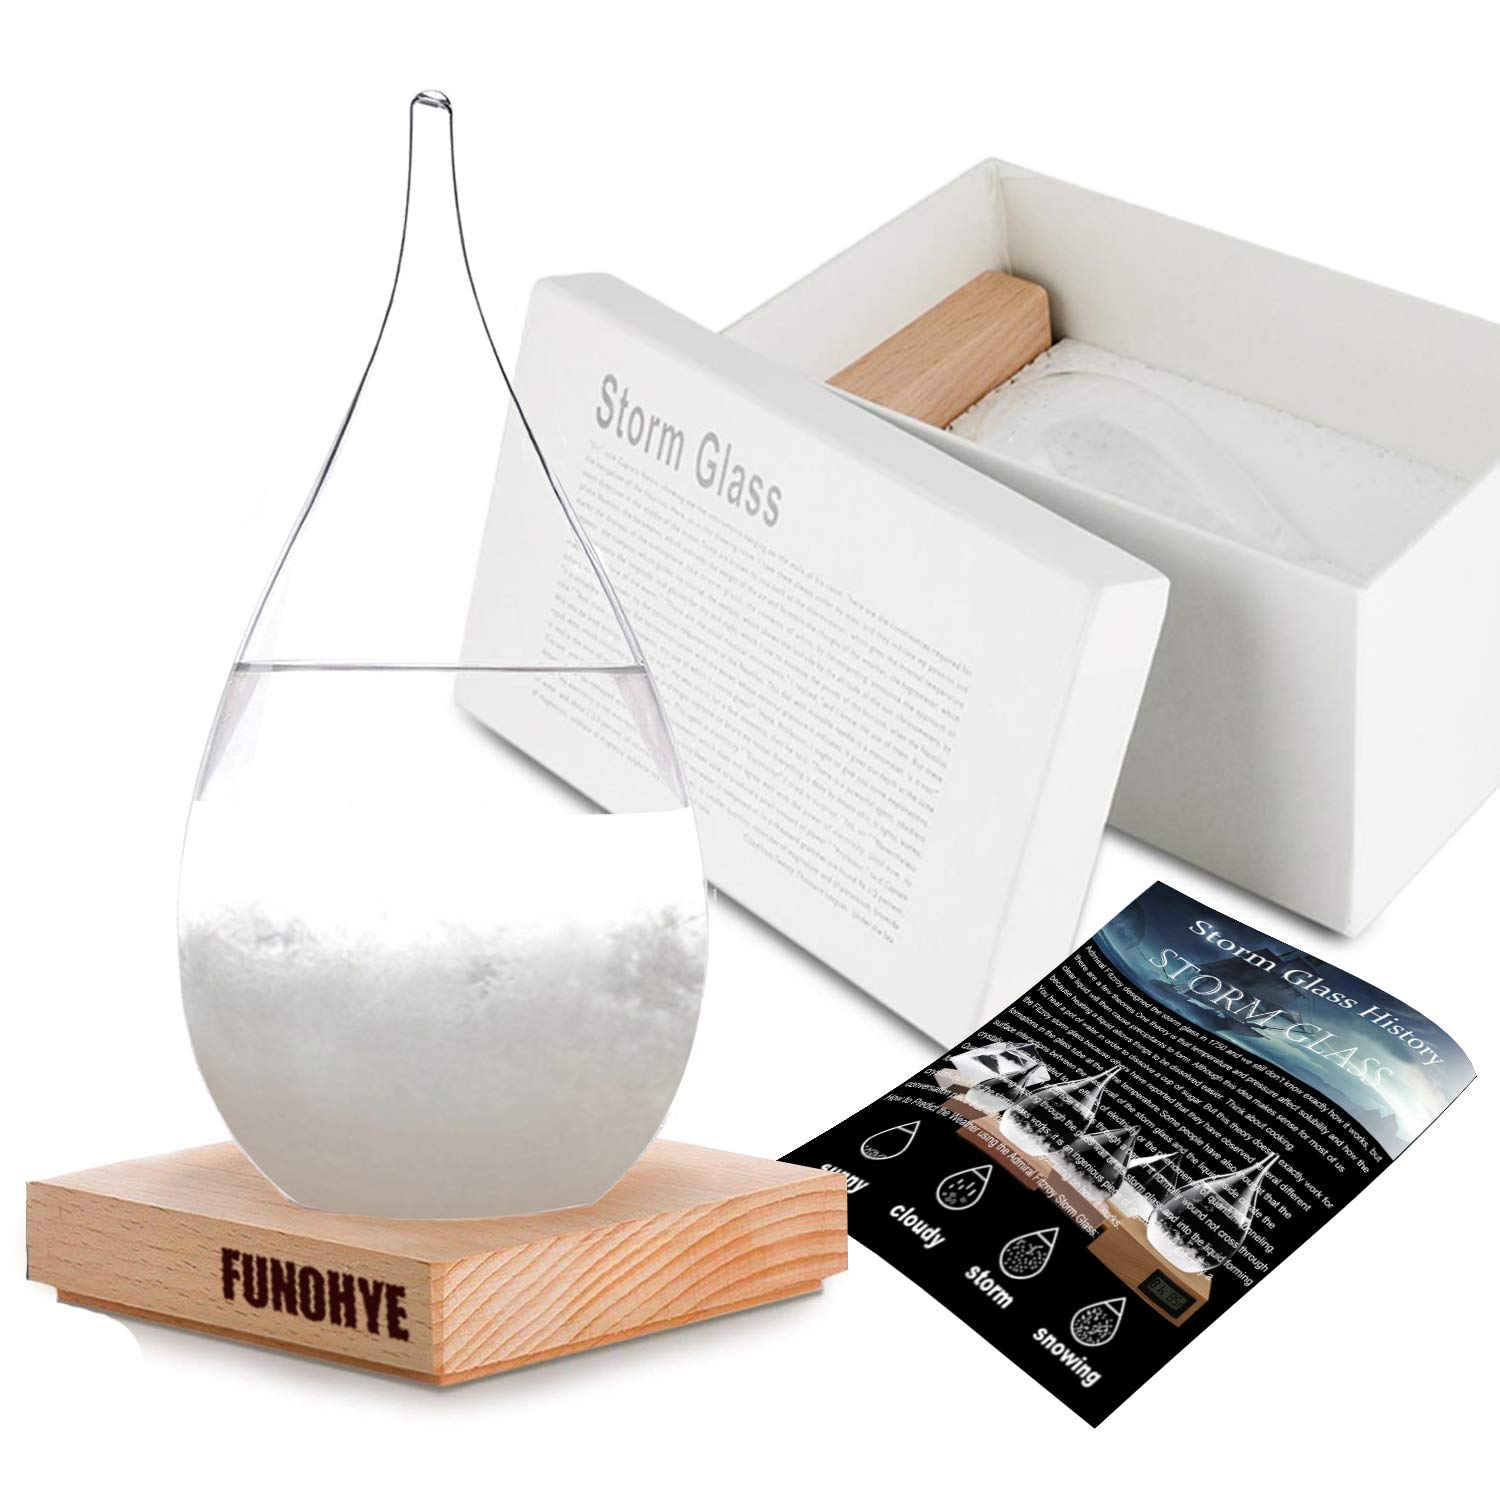 FUNOHYE Storm Glass Weather Stations Water Drop Weather Predictor Creative Forecast Bottle Nordic Style Decorative Weather Glass Decorative Centerpiece for Home Office (Large) by FUNOHYE